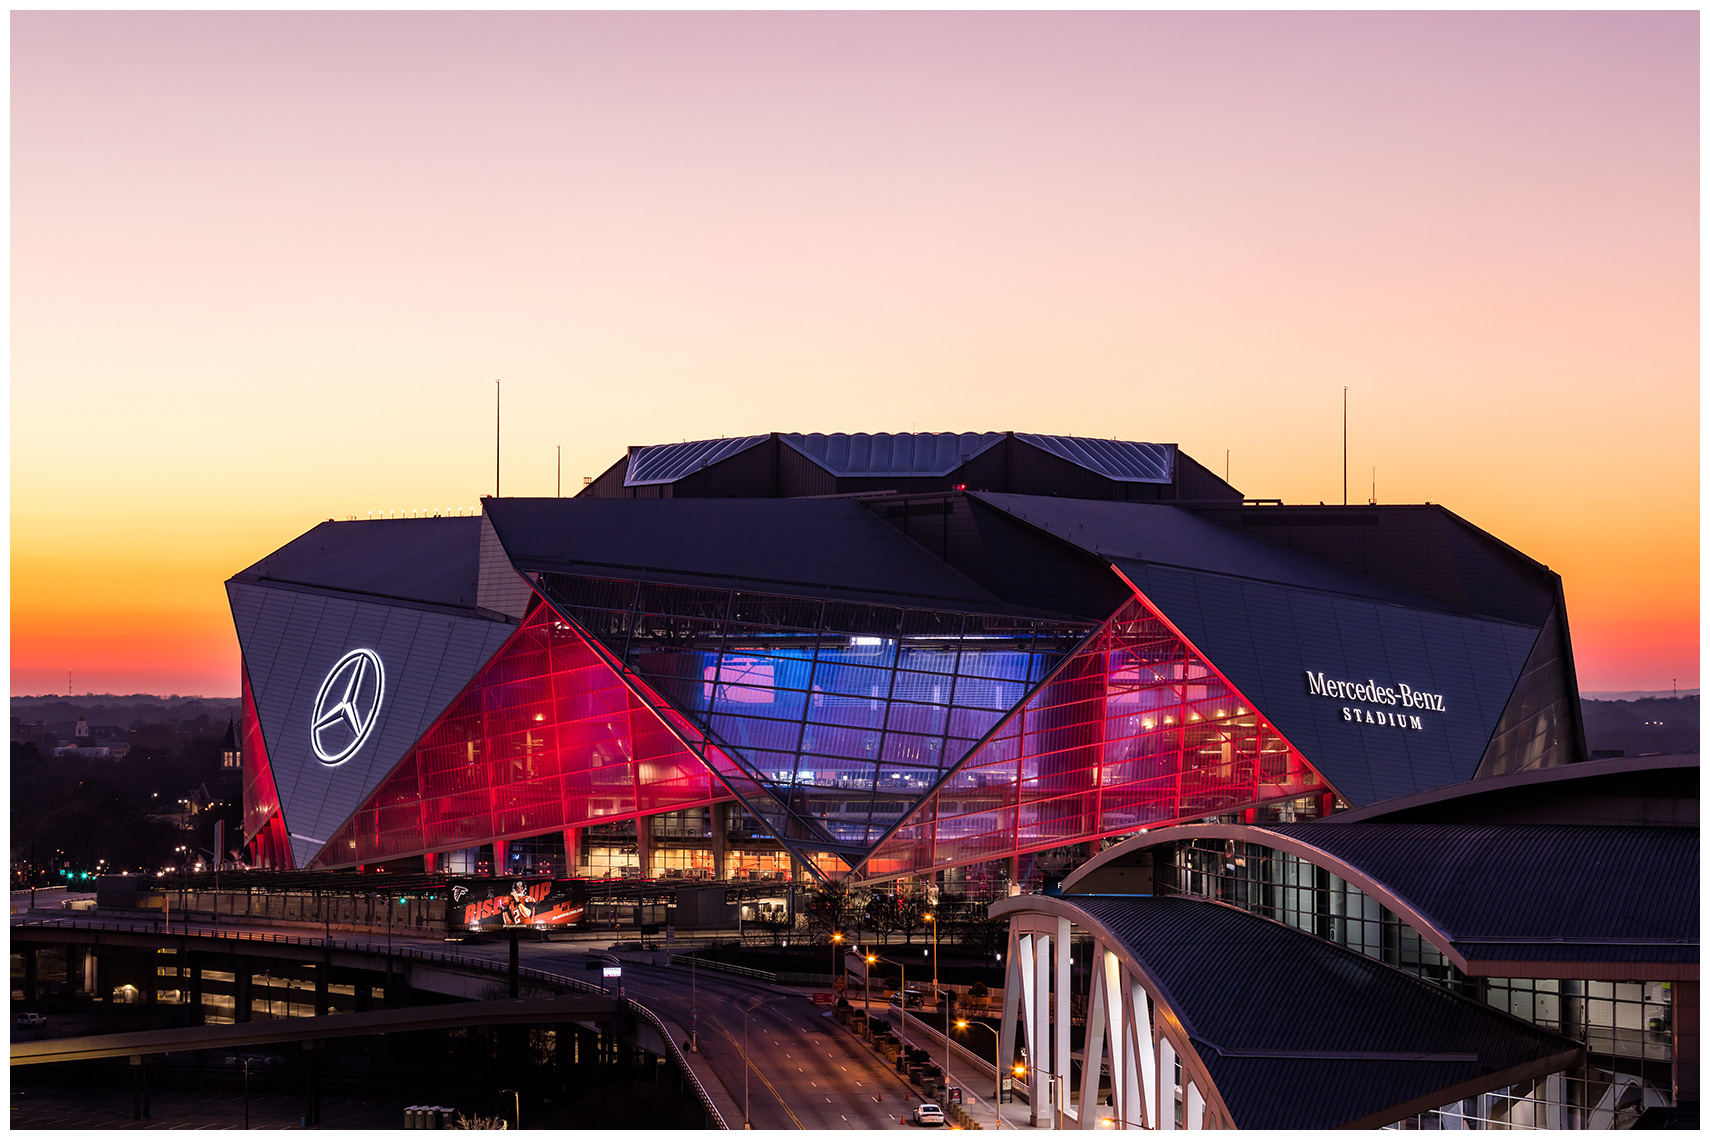 Exterior architecture of the Mercedes-Benz Stadium just after sunset.